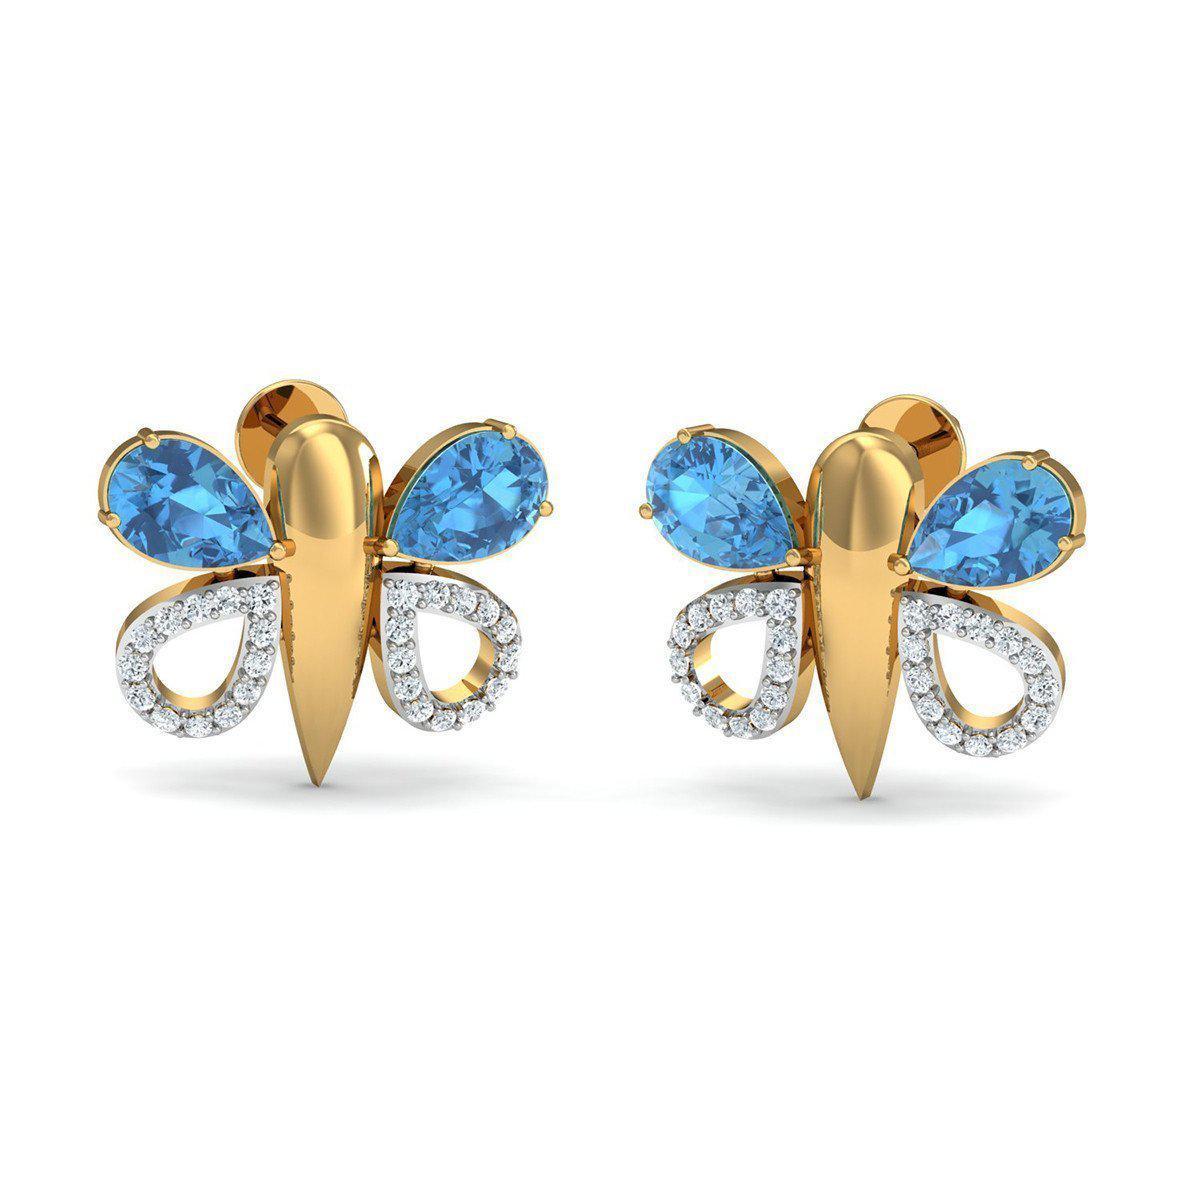 Diamoire Jewels Oval Cut Natural Aquamarine and Diamond Earrings in 10kt Yellow Gold wJSLArov